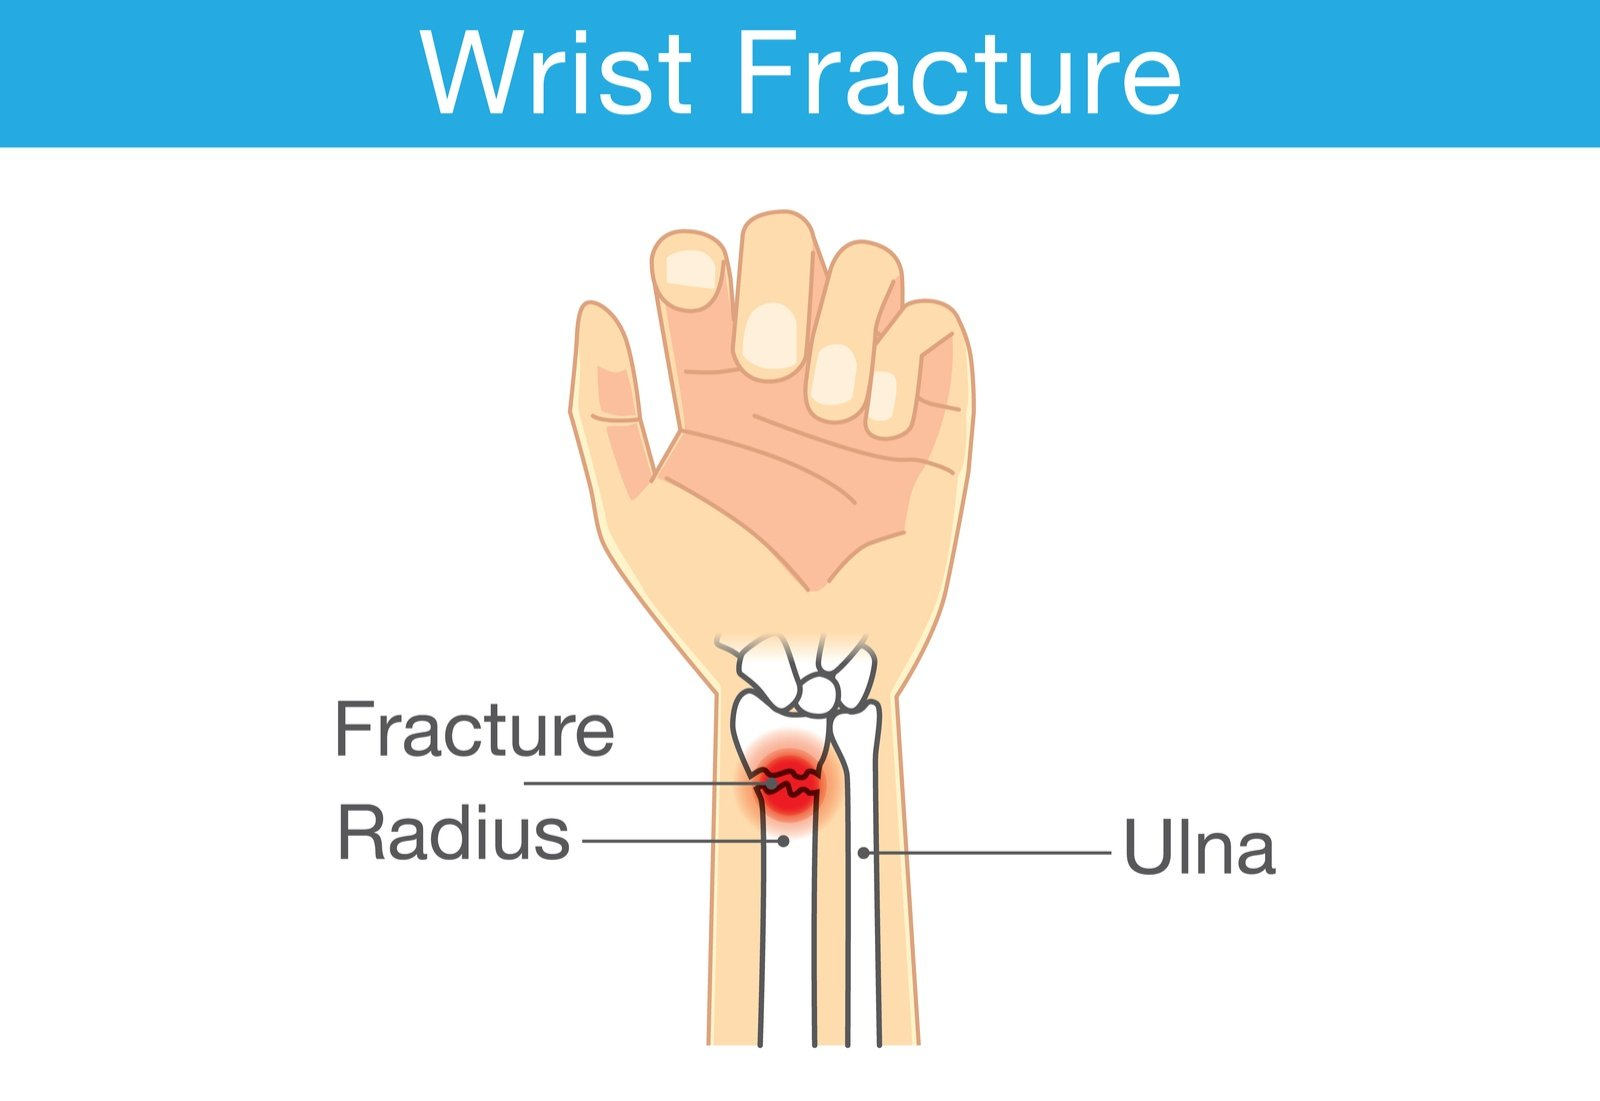 How to diagnose and treat radial fractures